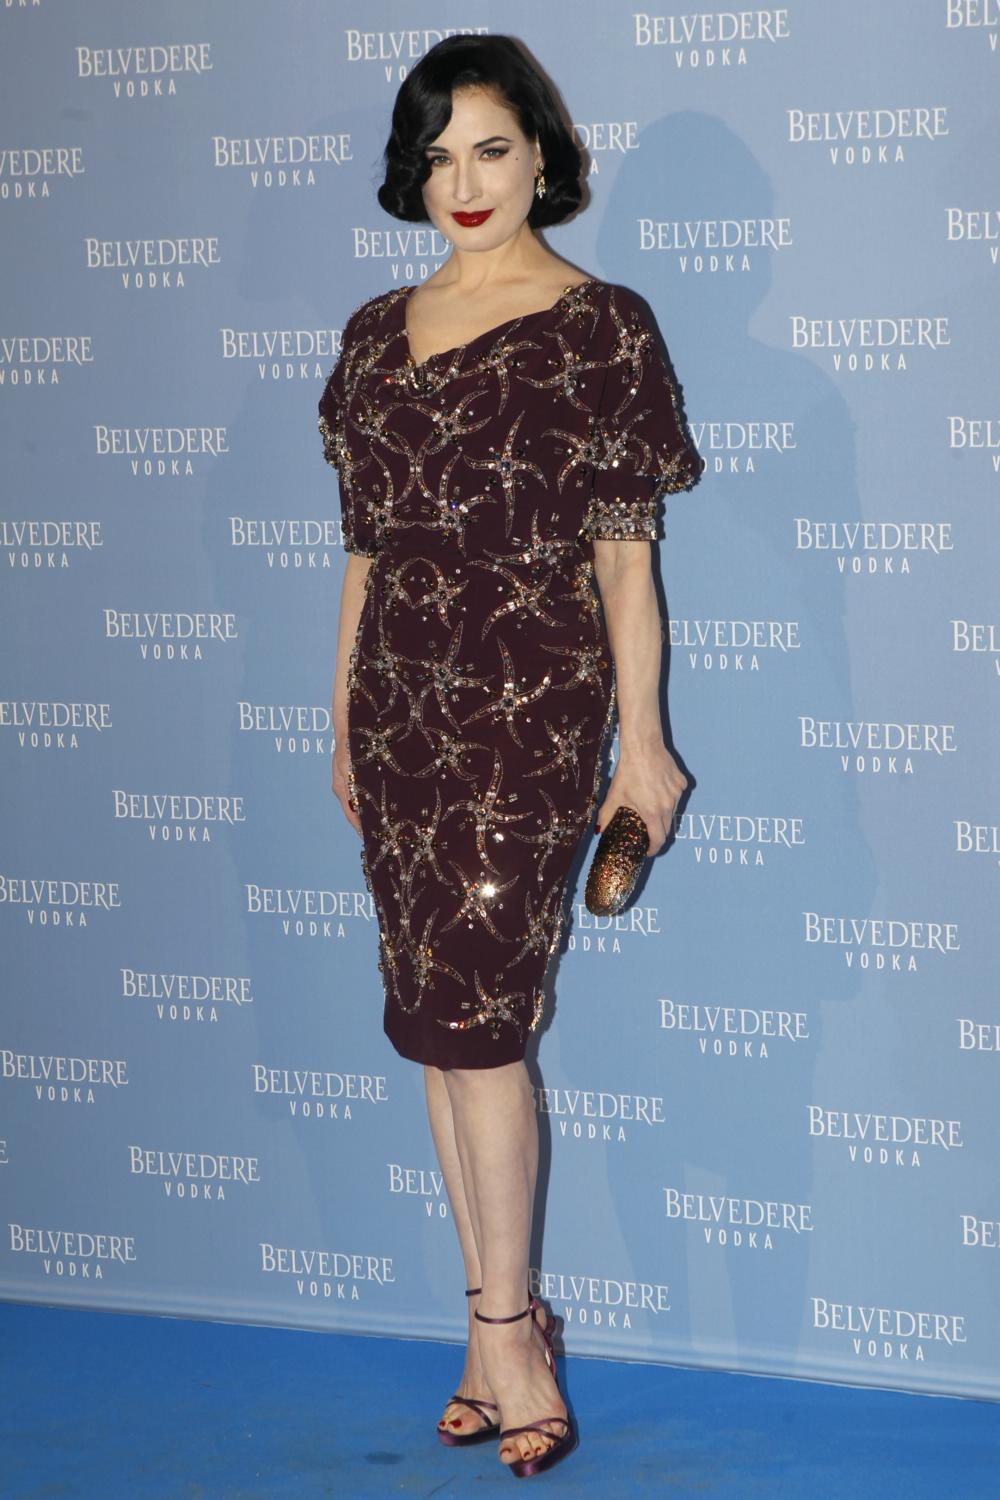 Dita Von Teese Attends Belvedere Vodka Event-2